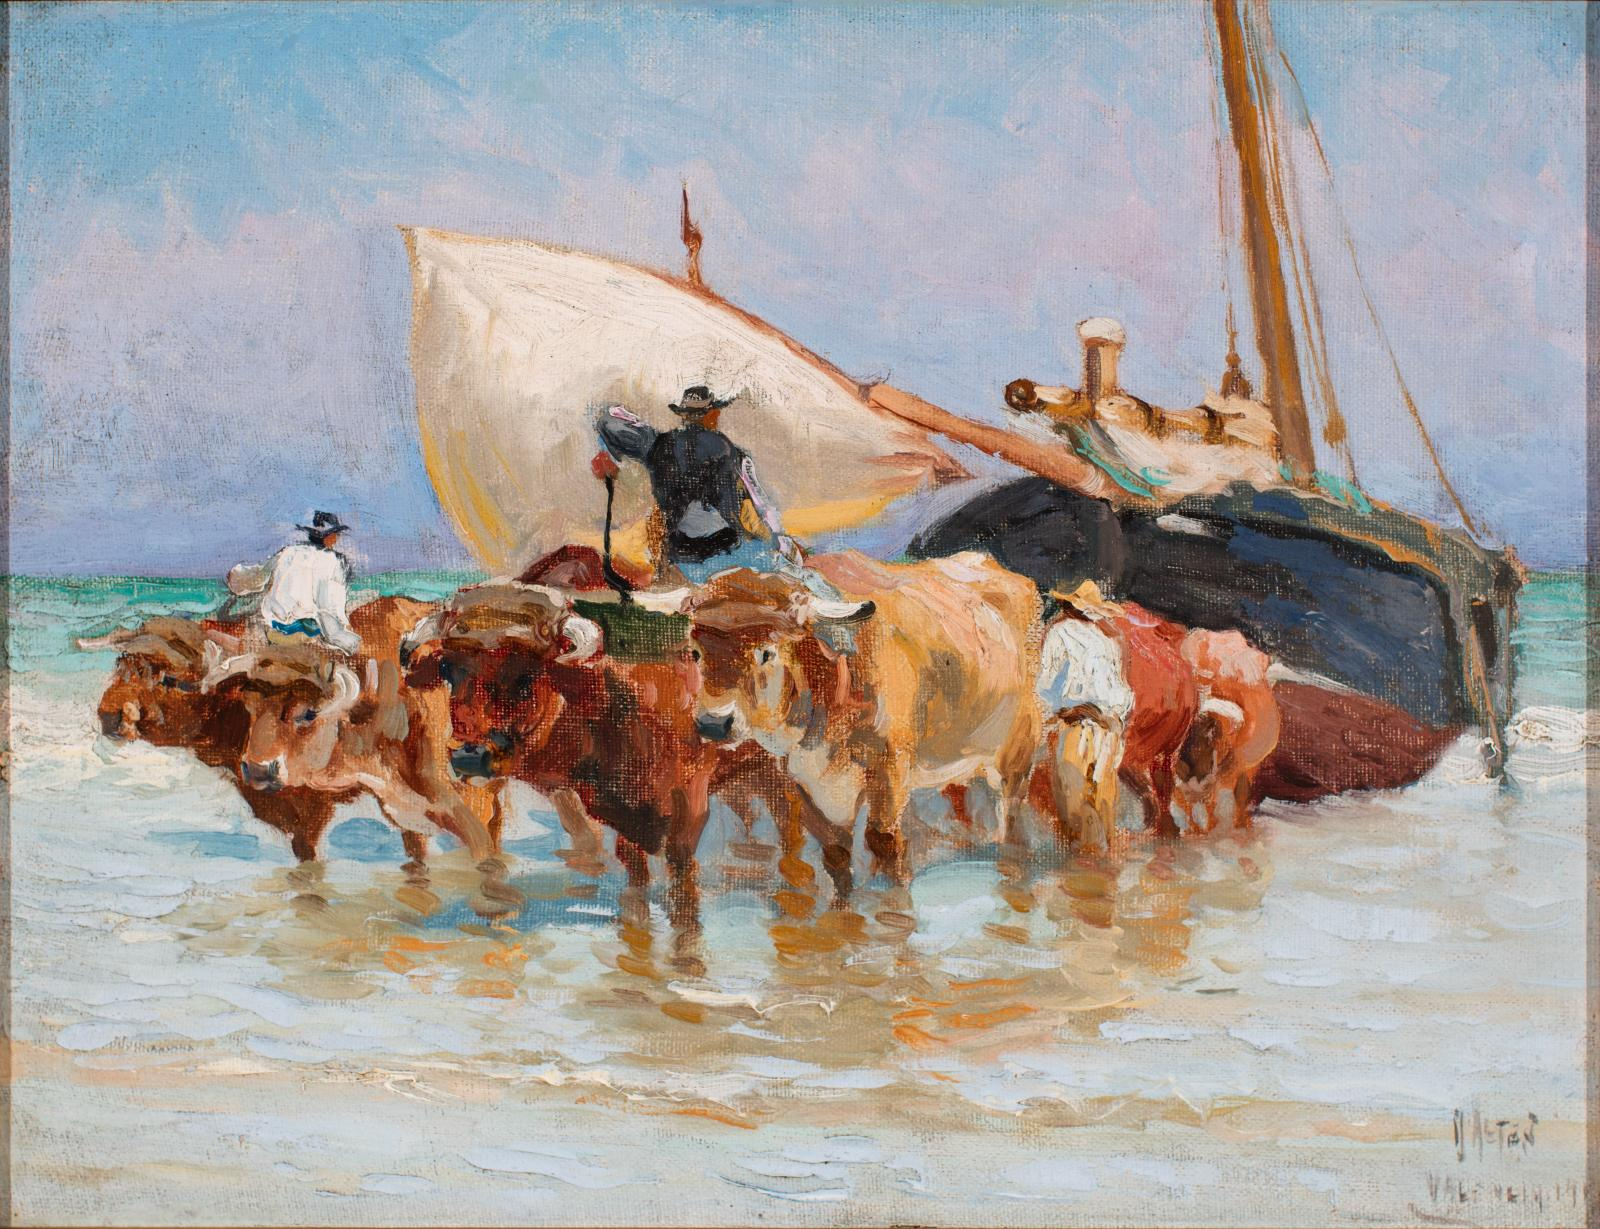 A large team of oxen in the water pulling boats, one boat it white, the other blue and red.